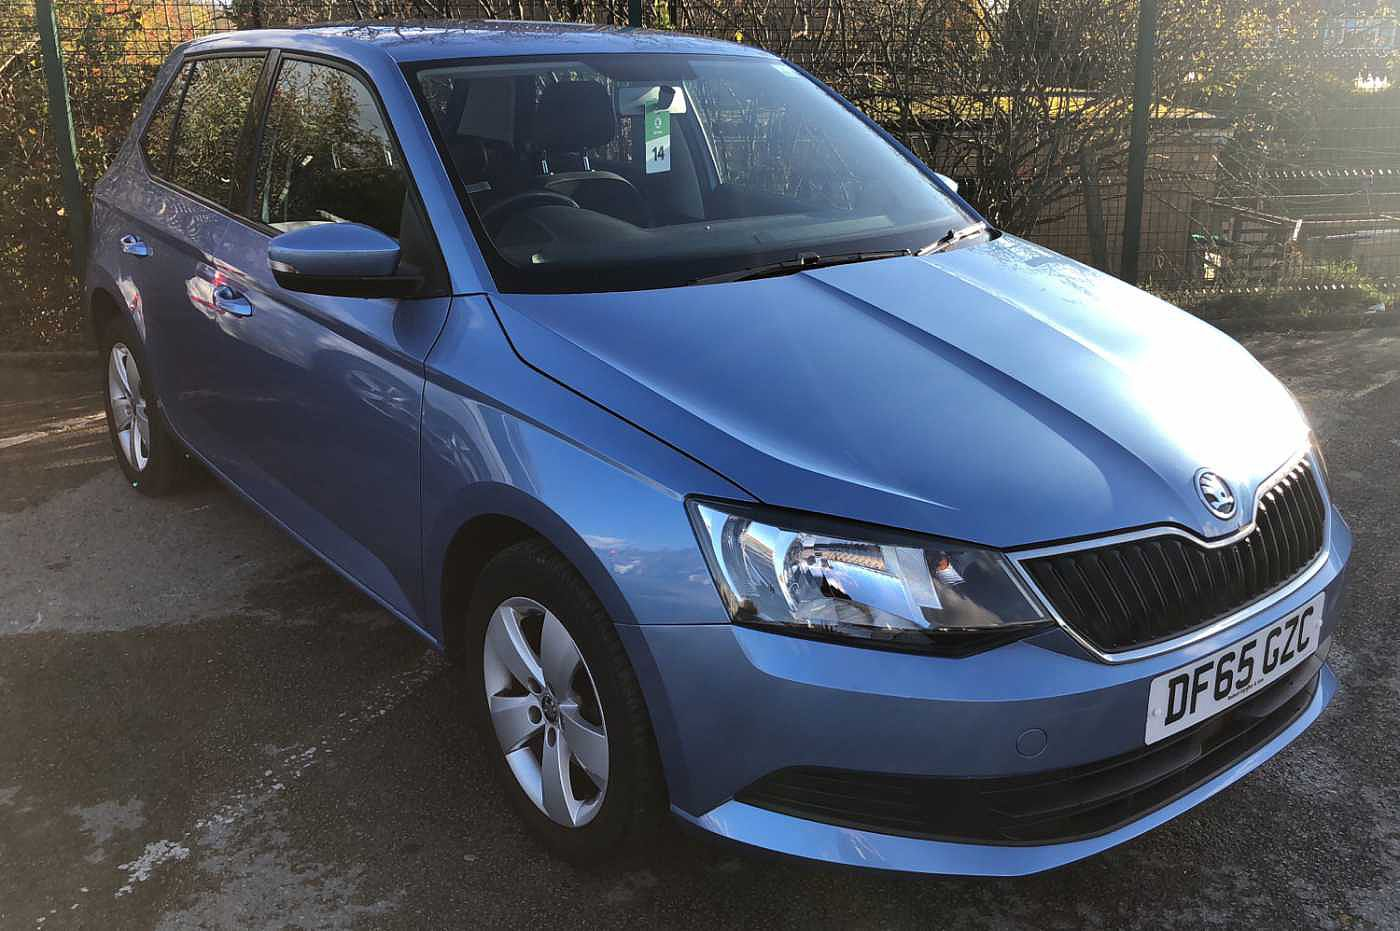 2015 Denim Blue  Metallic Skoda Fabia Hatchback 5-Dr 1.0 MPI, Petrol, Manual